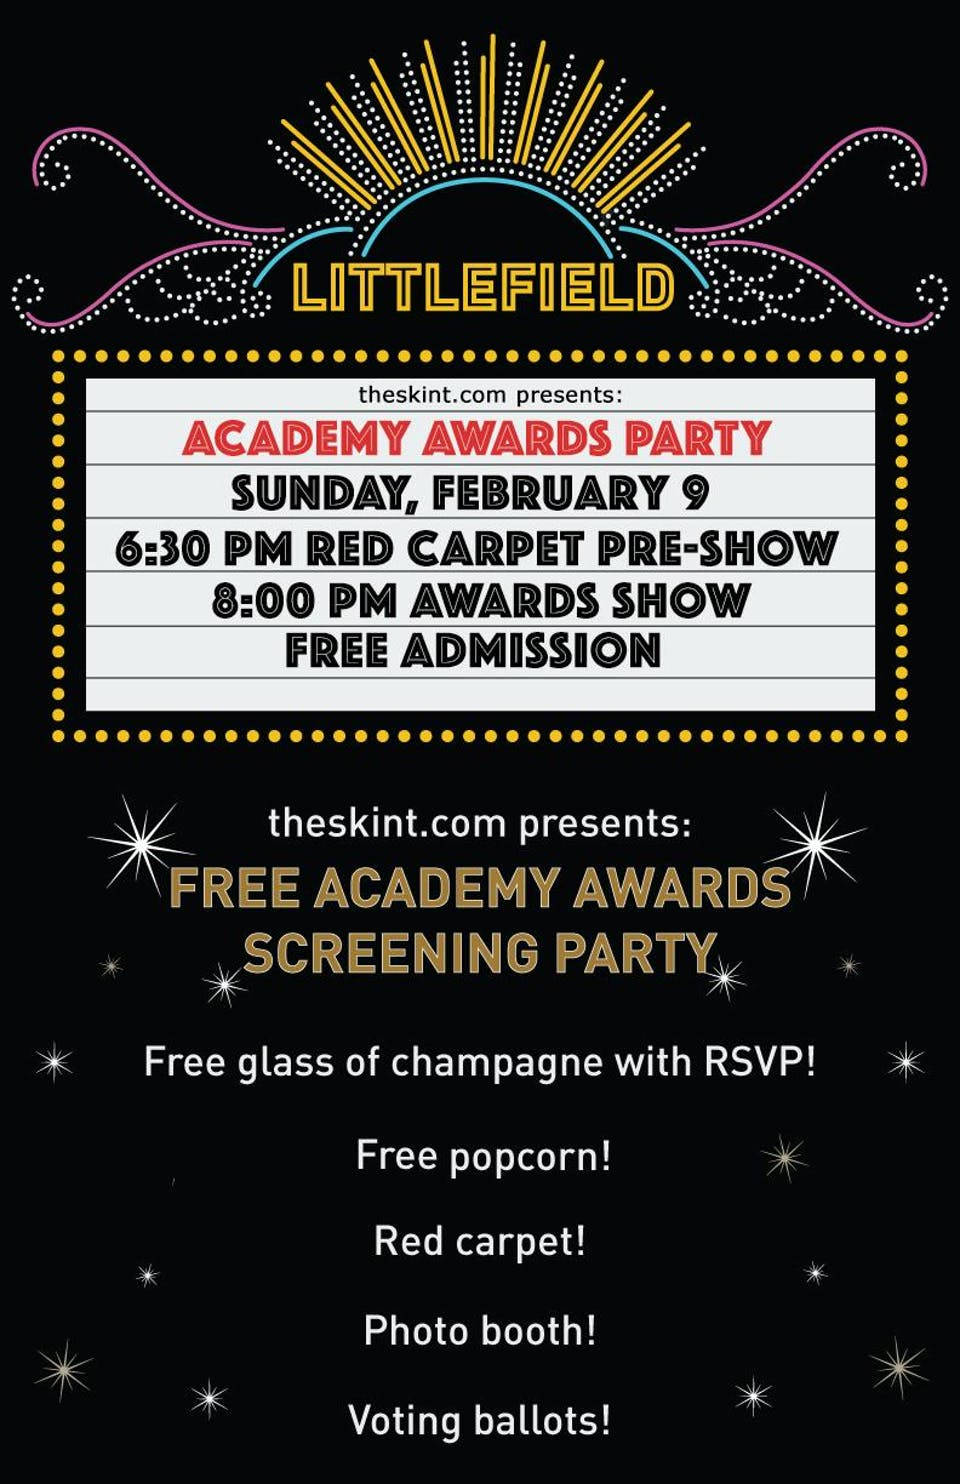 theskint.com presents: Free Academy Awards Screening Party